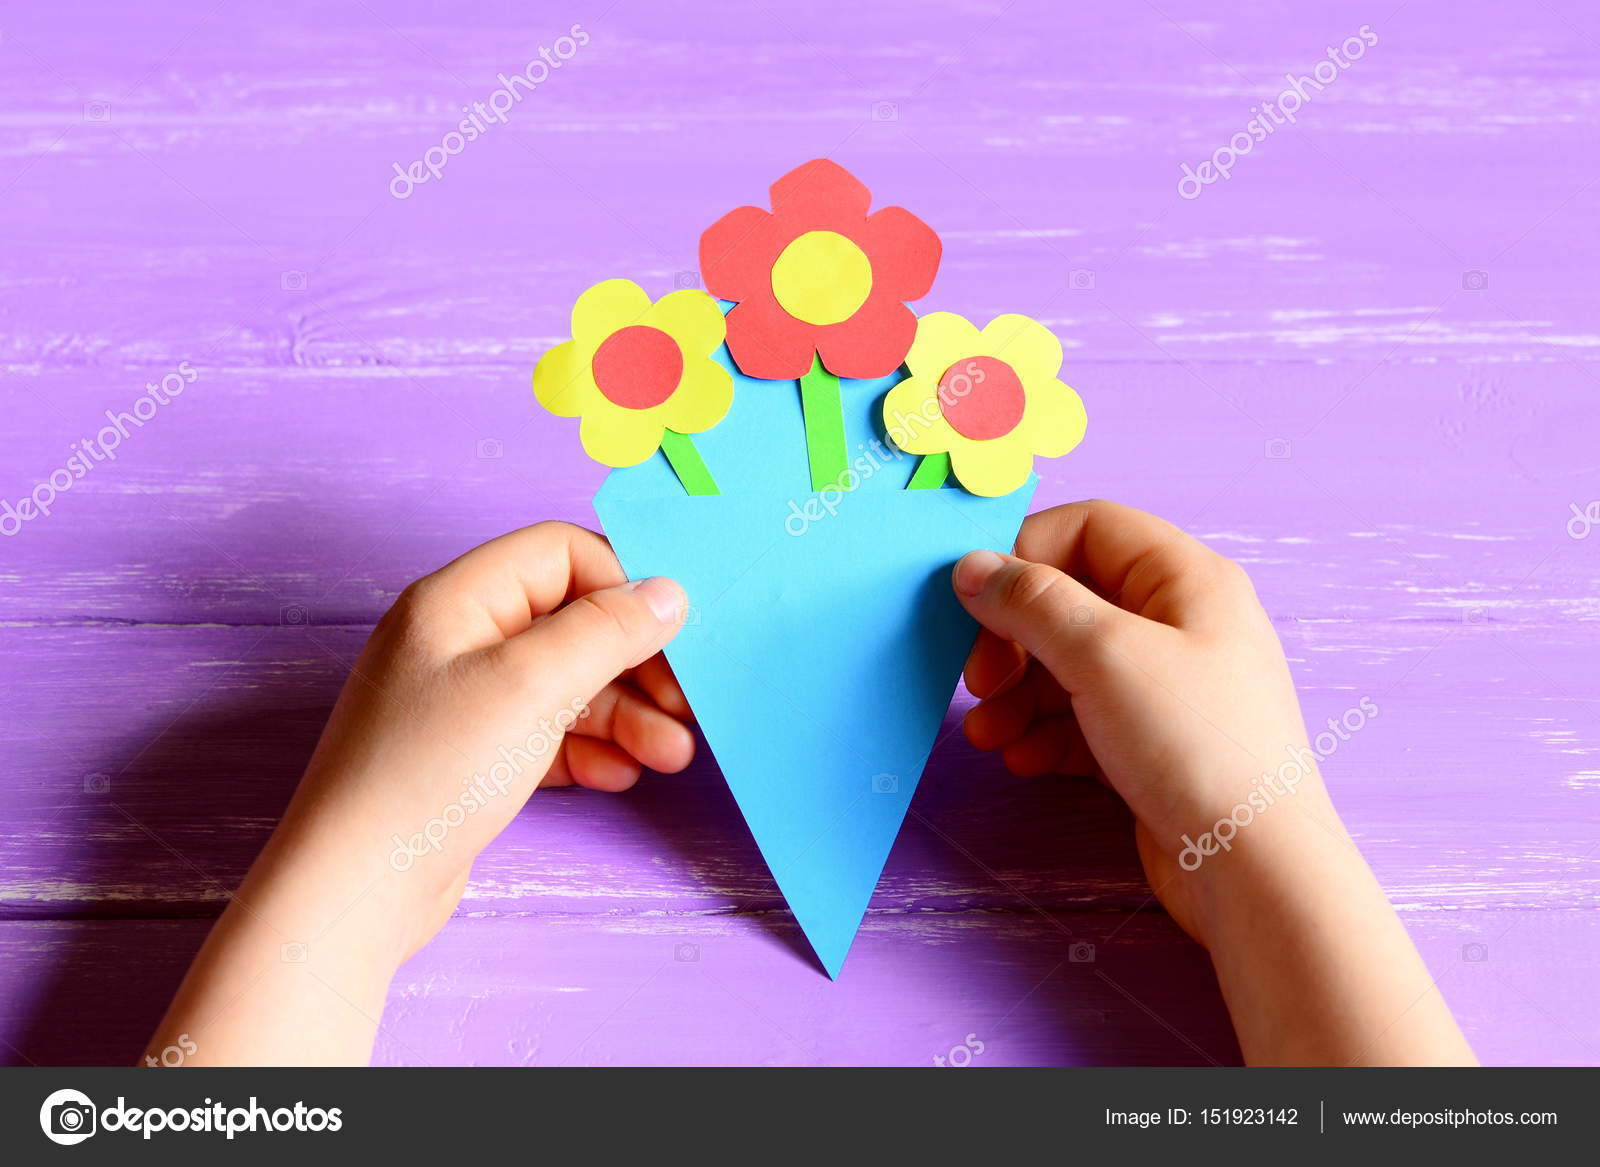 Small child made paper flowers crafts for mothers day or birthday small child made paper flowers crafts for mothers day or birthday child holds and shows mightylinksfo